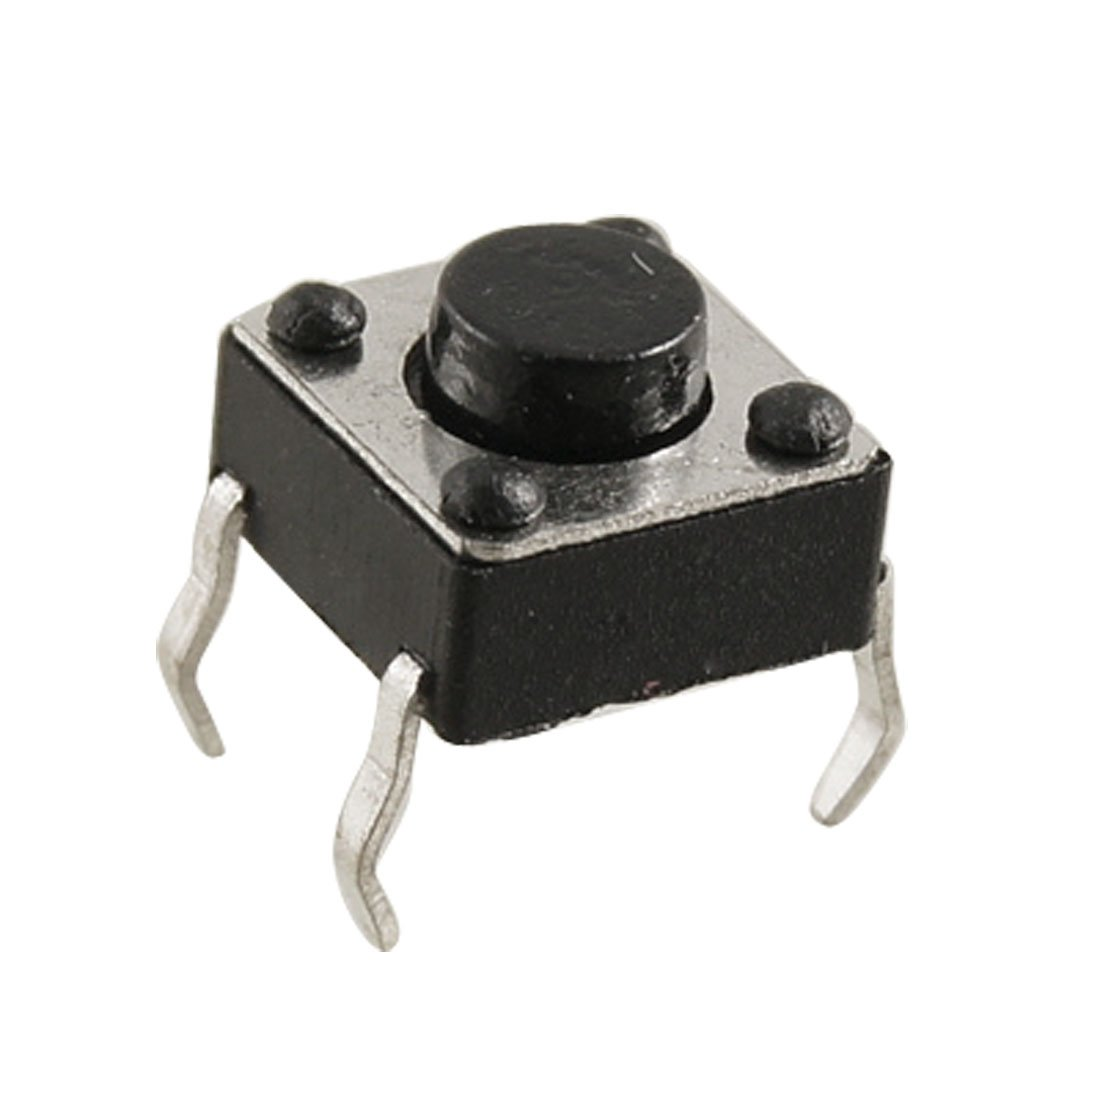 20 Pcs 6x6x4.3mm 4 Pins DIP Through-Hole Momentary Tact Tactile Switch Sourcingmap SYNCELEC000801